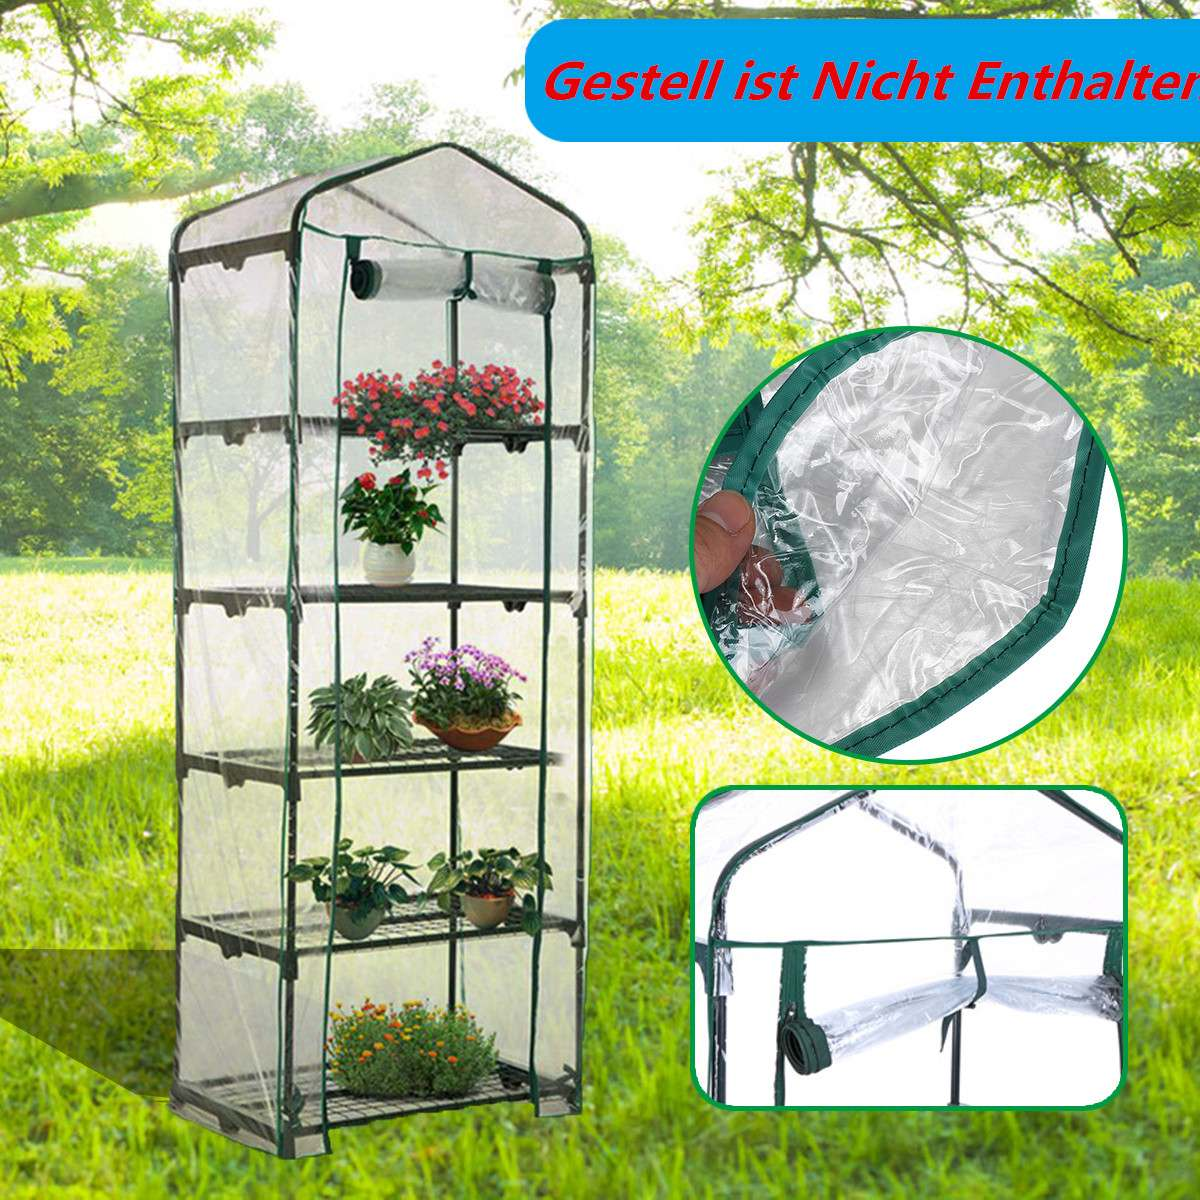 Garden Buildings Garden Greenhouses 2019 Fashion Apex-roof 5-tier Garden Greenhouse Hot Plant House Shelf Shed Clear Pvc Cover Keep Warm Good Breathability 69x49x187cm Removable